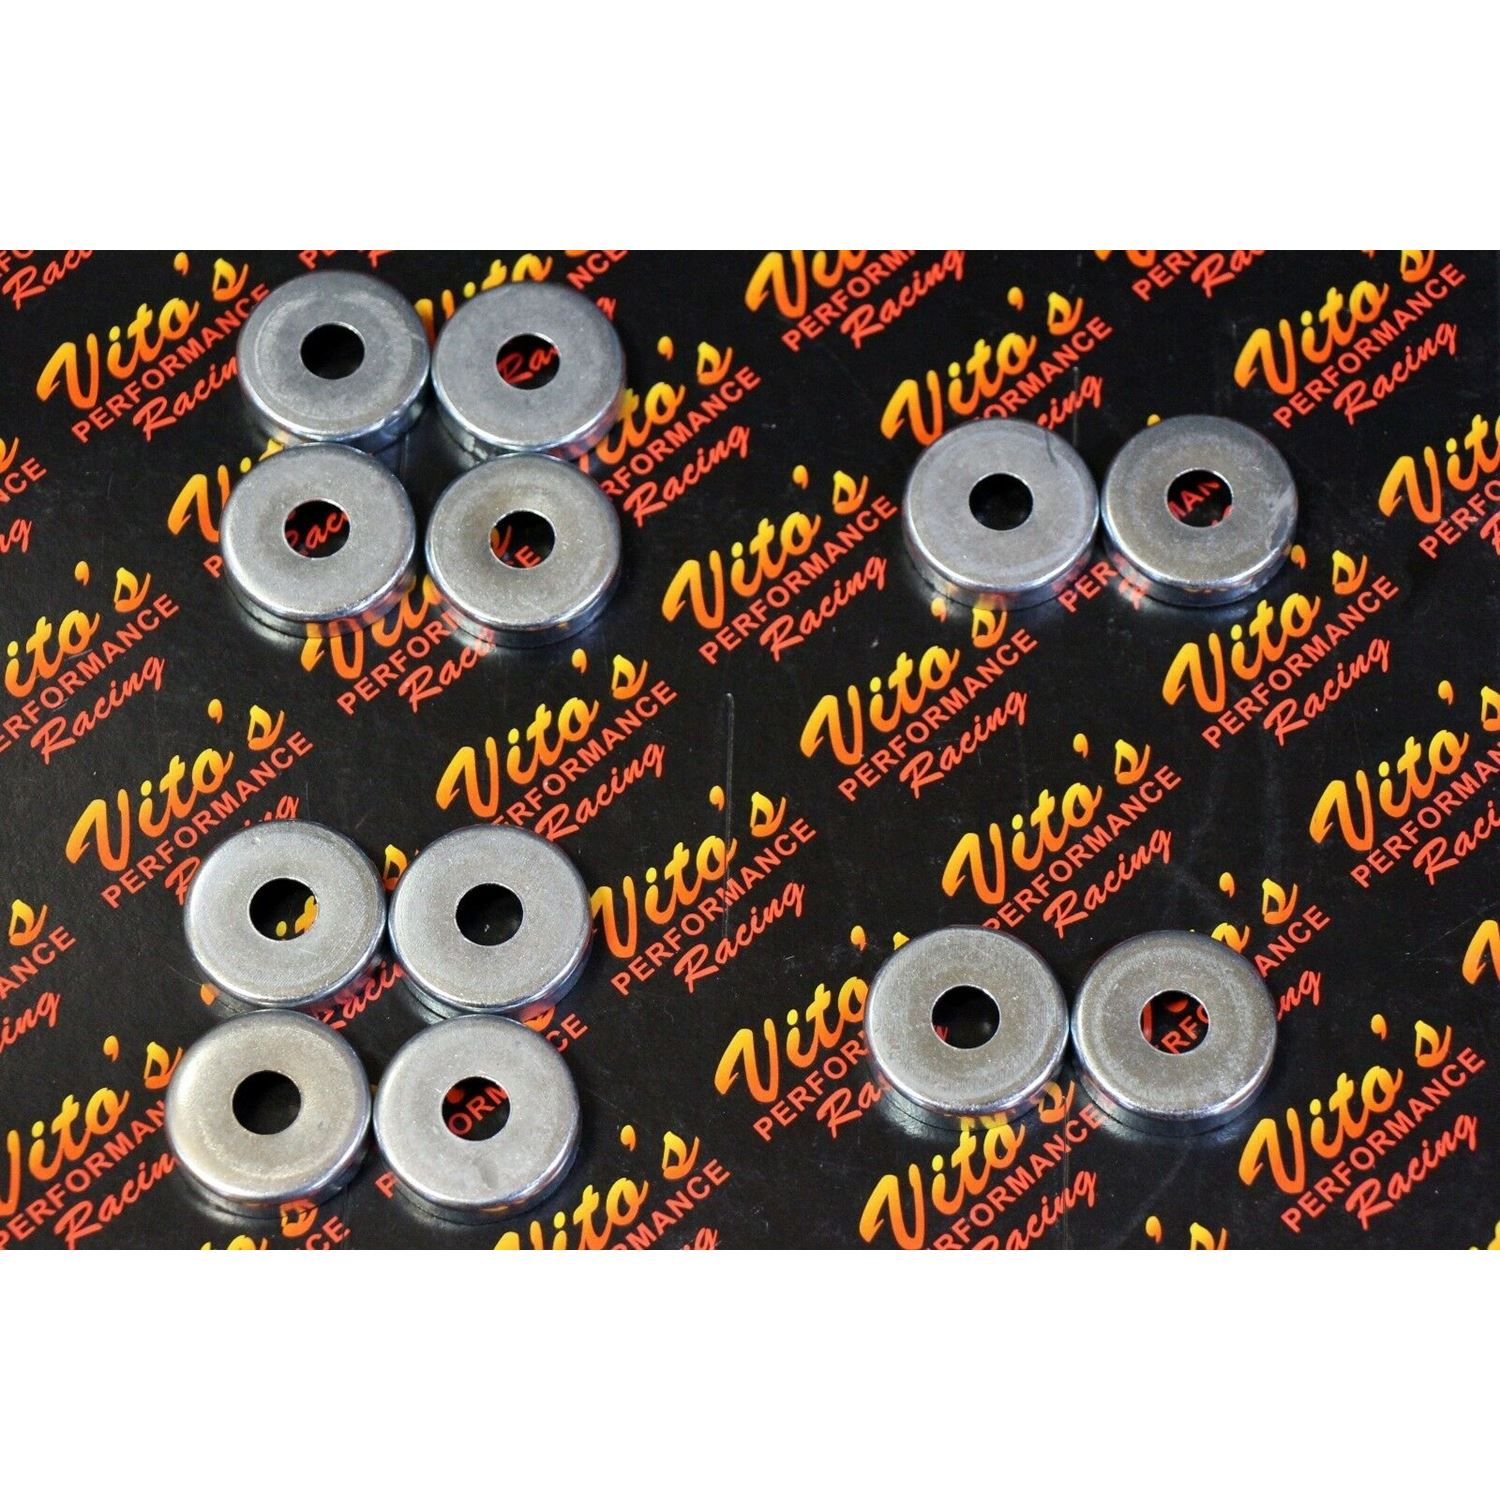 12 x Vito's Performance A-Arm DUST COVER CAPS